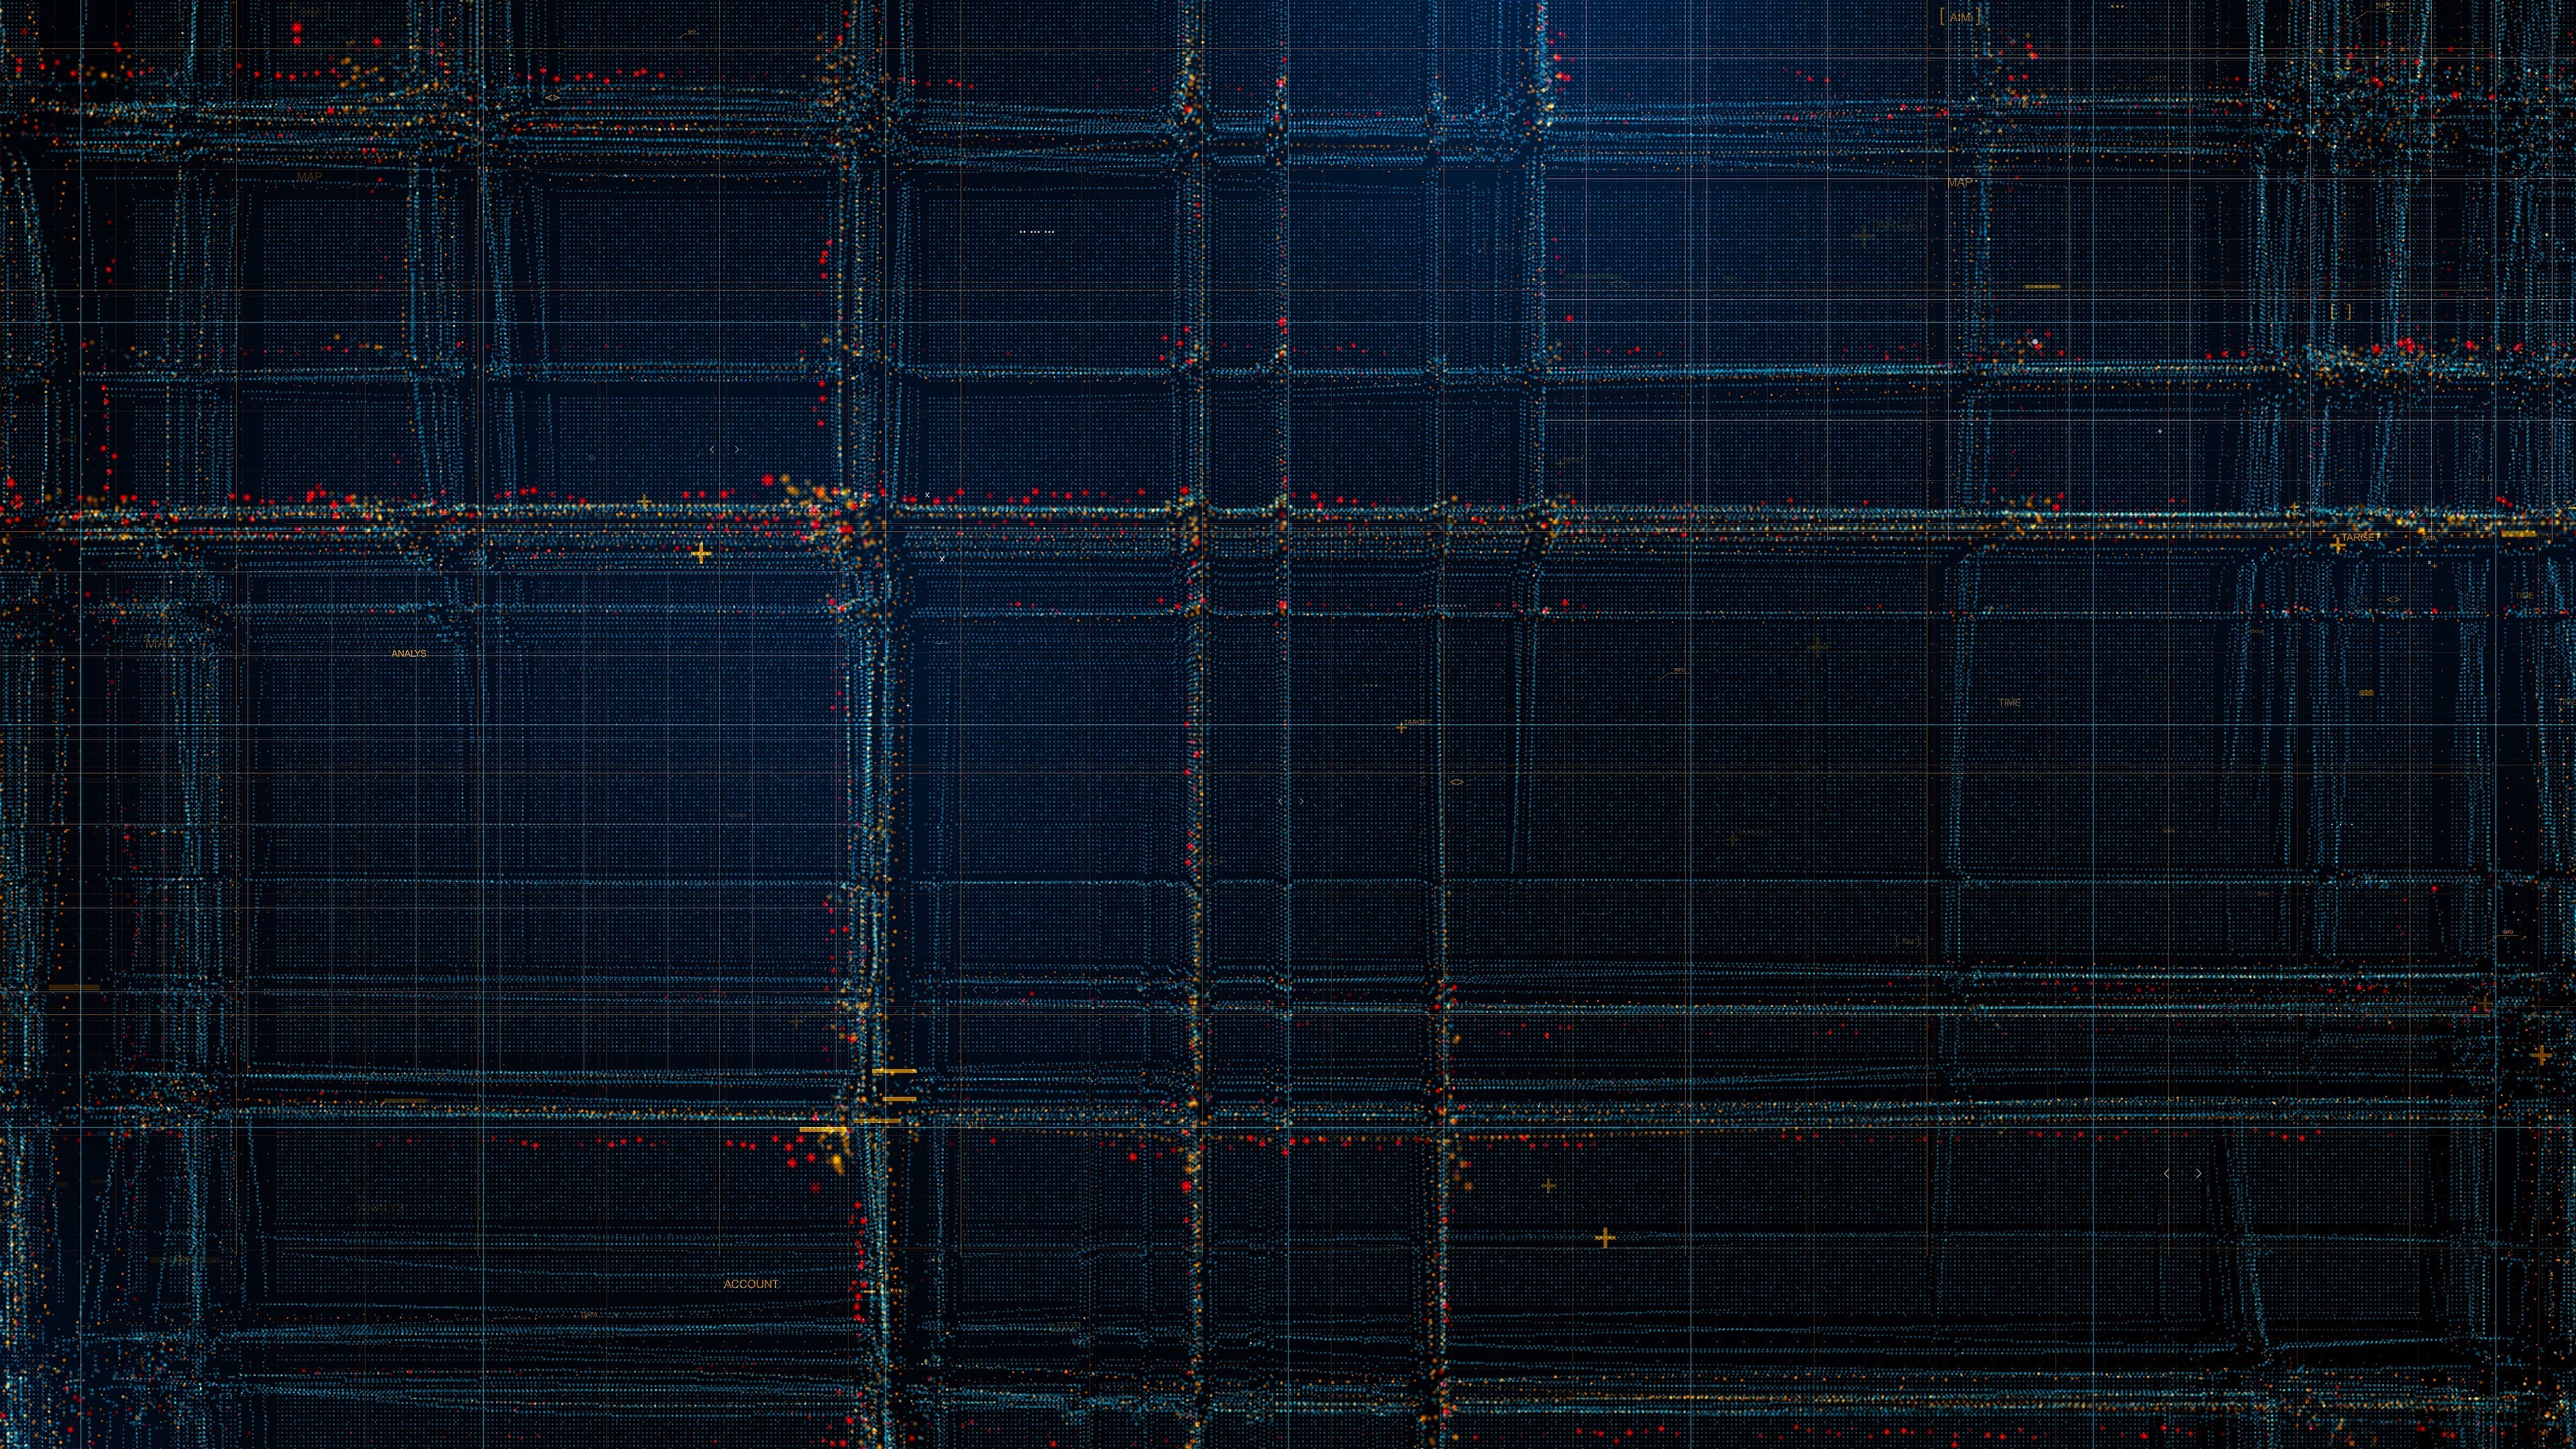 Particles, structure, lines, pattern, dark, 3840x2400 wallpaper